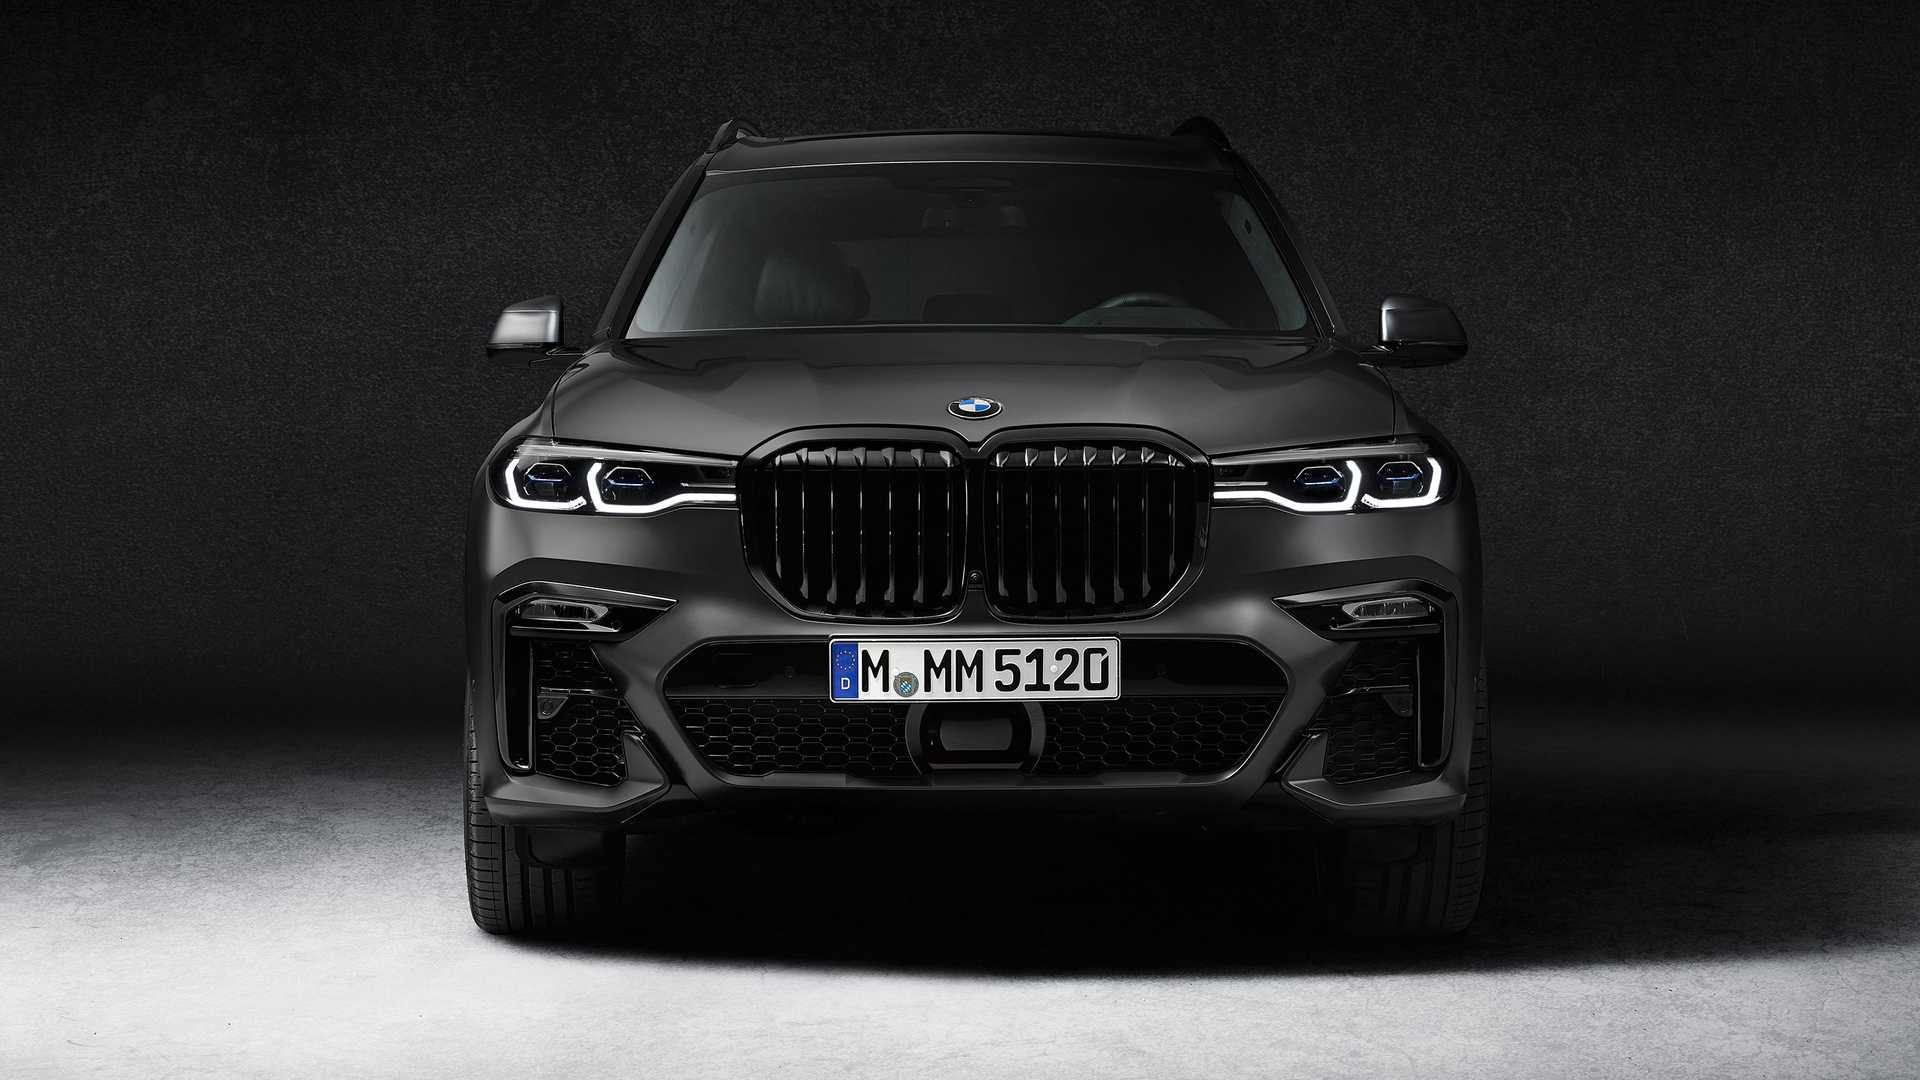 2021-bmw-x7-dark-shadow-edition-front.jpg